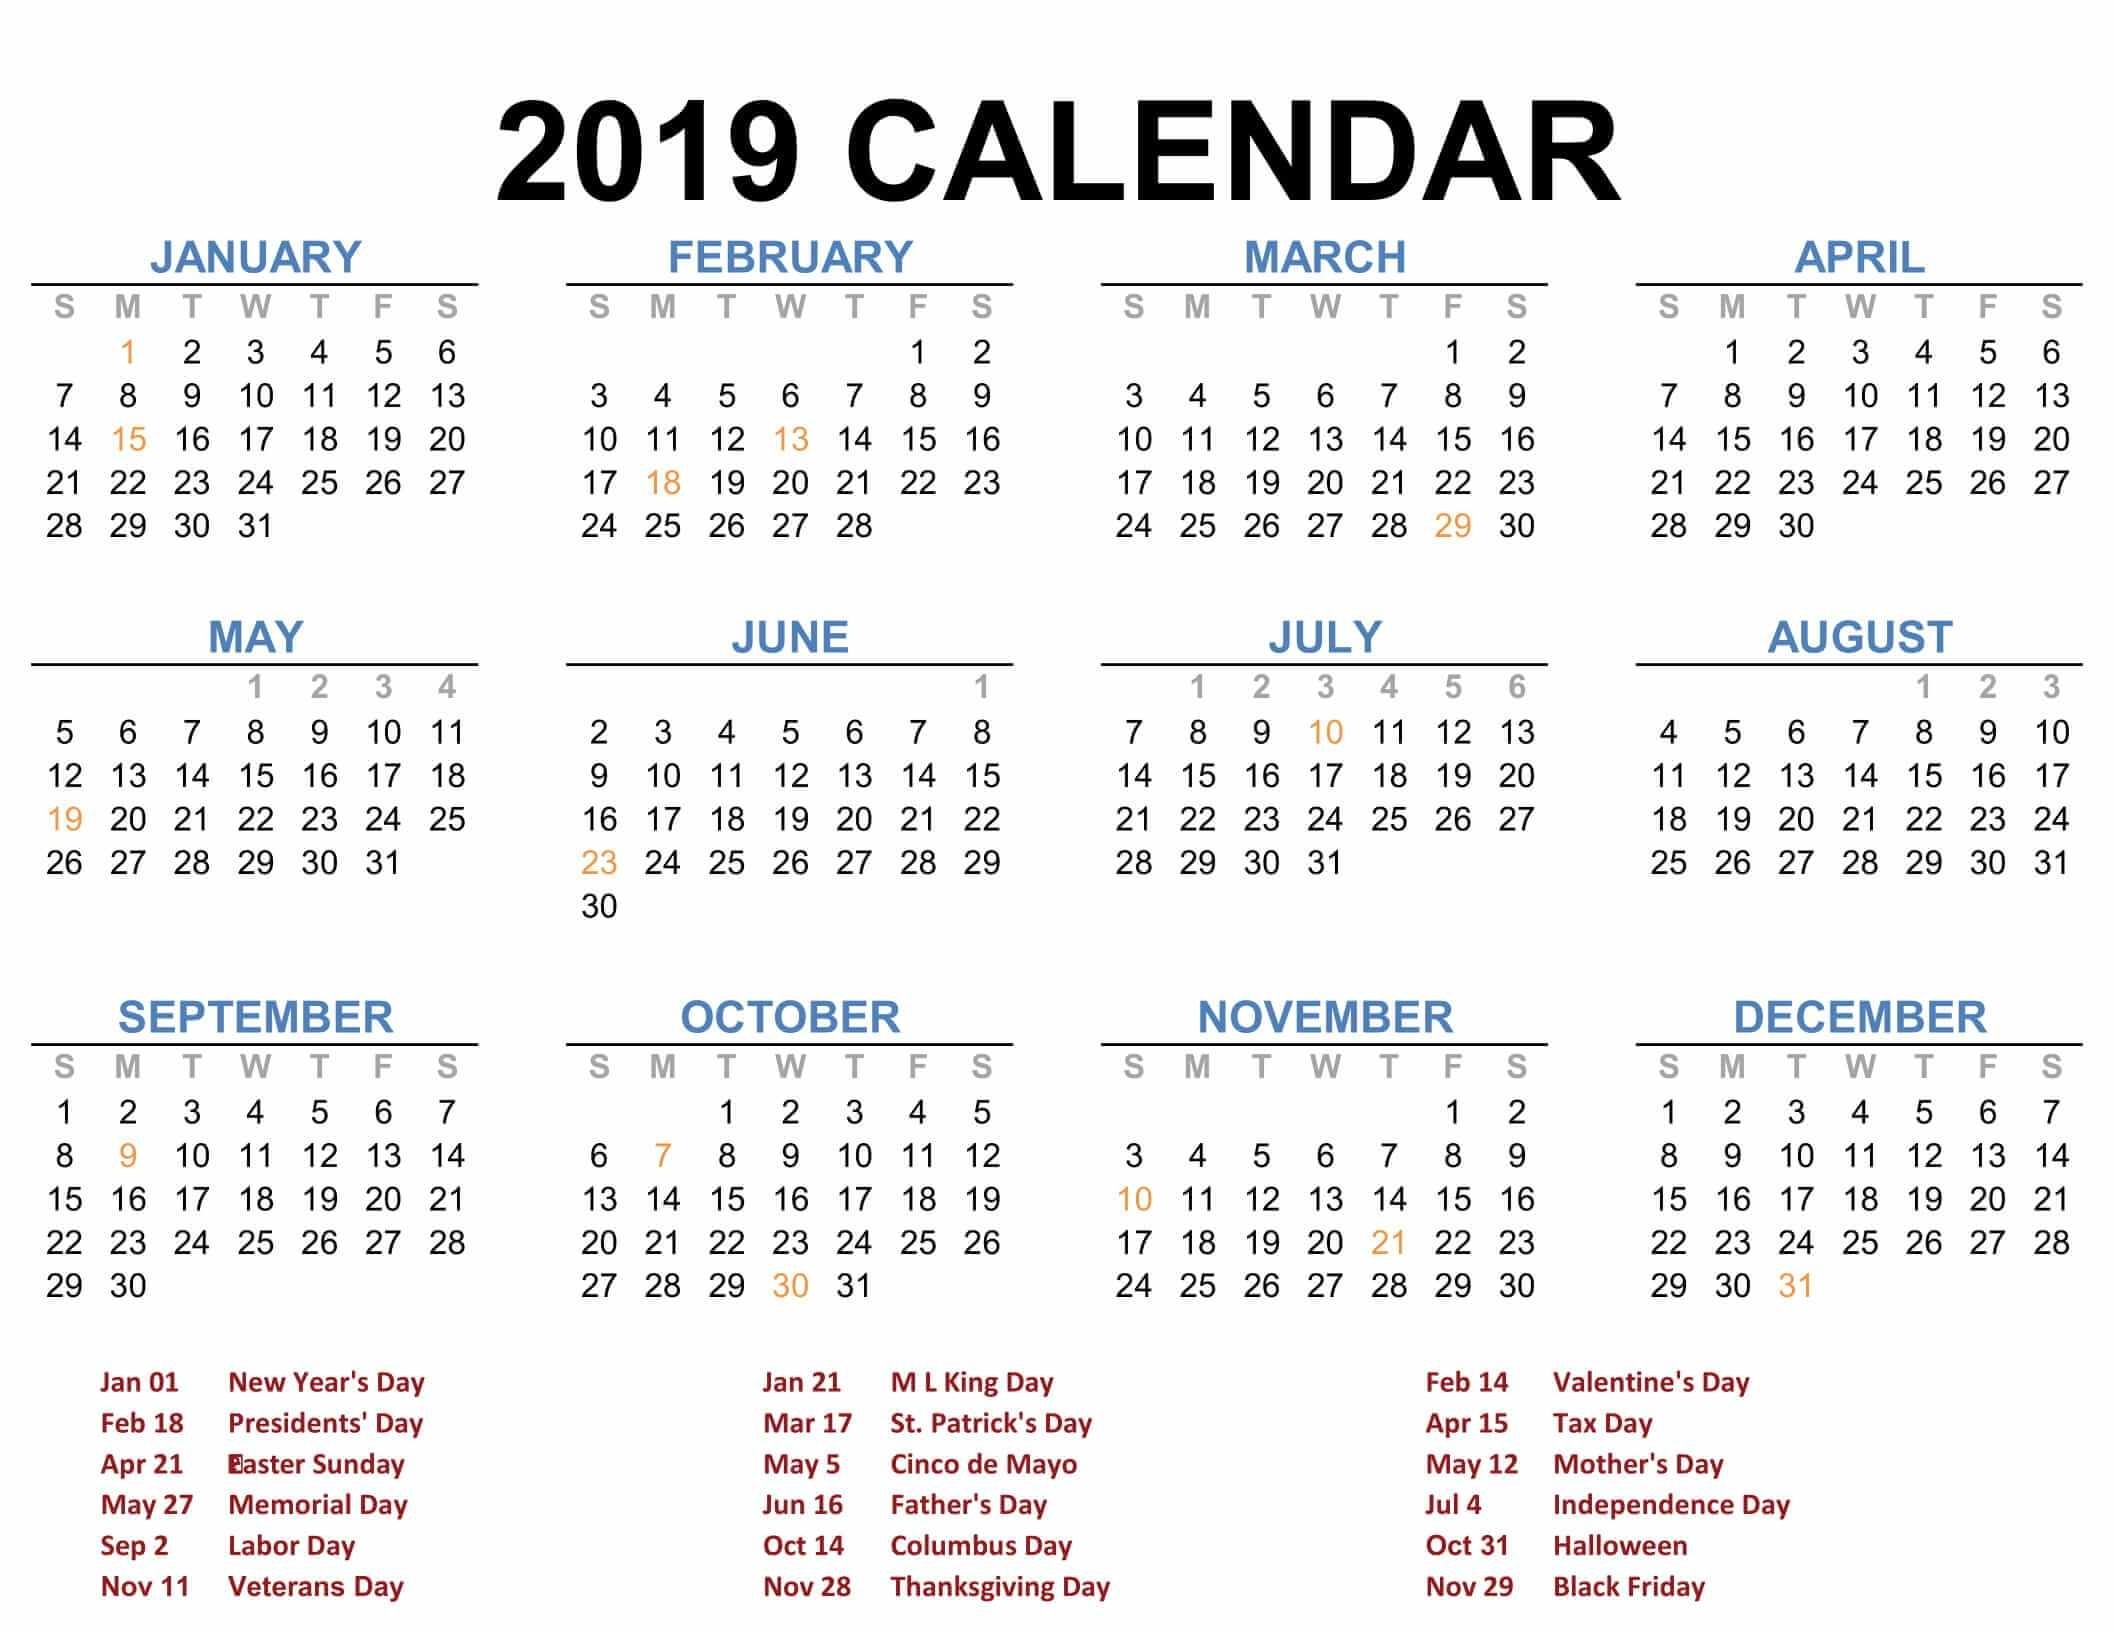 2019 Printable Calendar Templates - Pdf Excel Word - Free Calendars with Blank Calendar Page Year Long